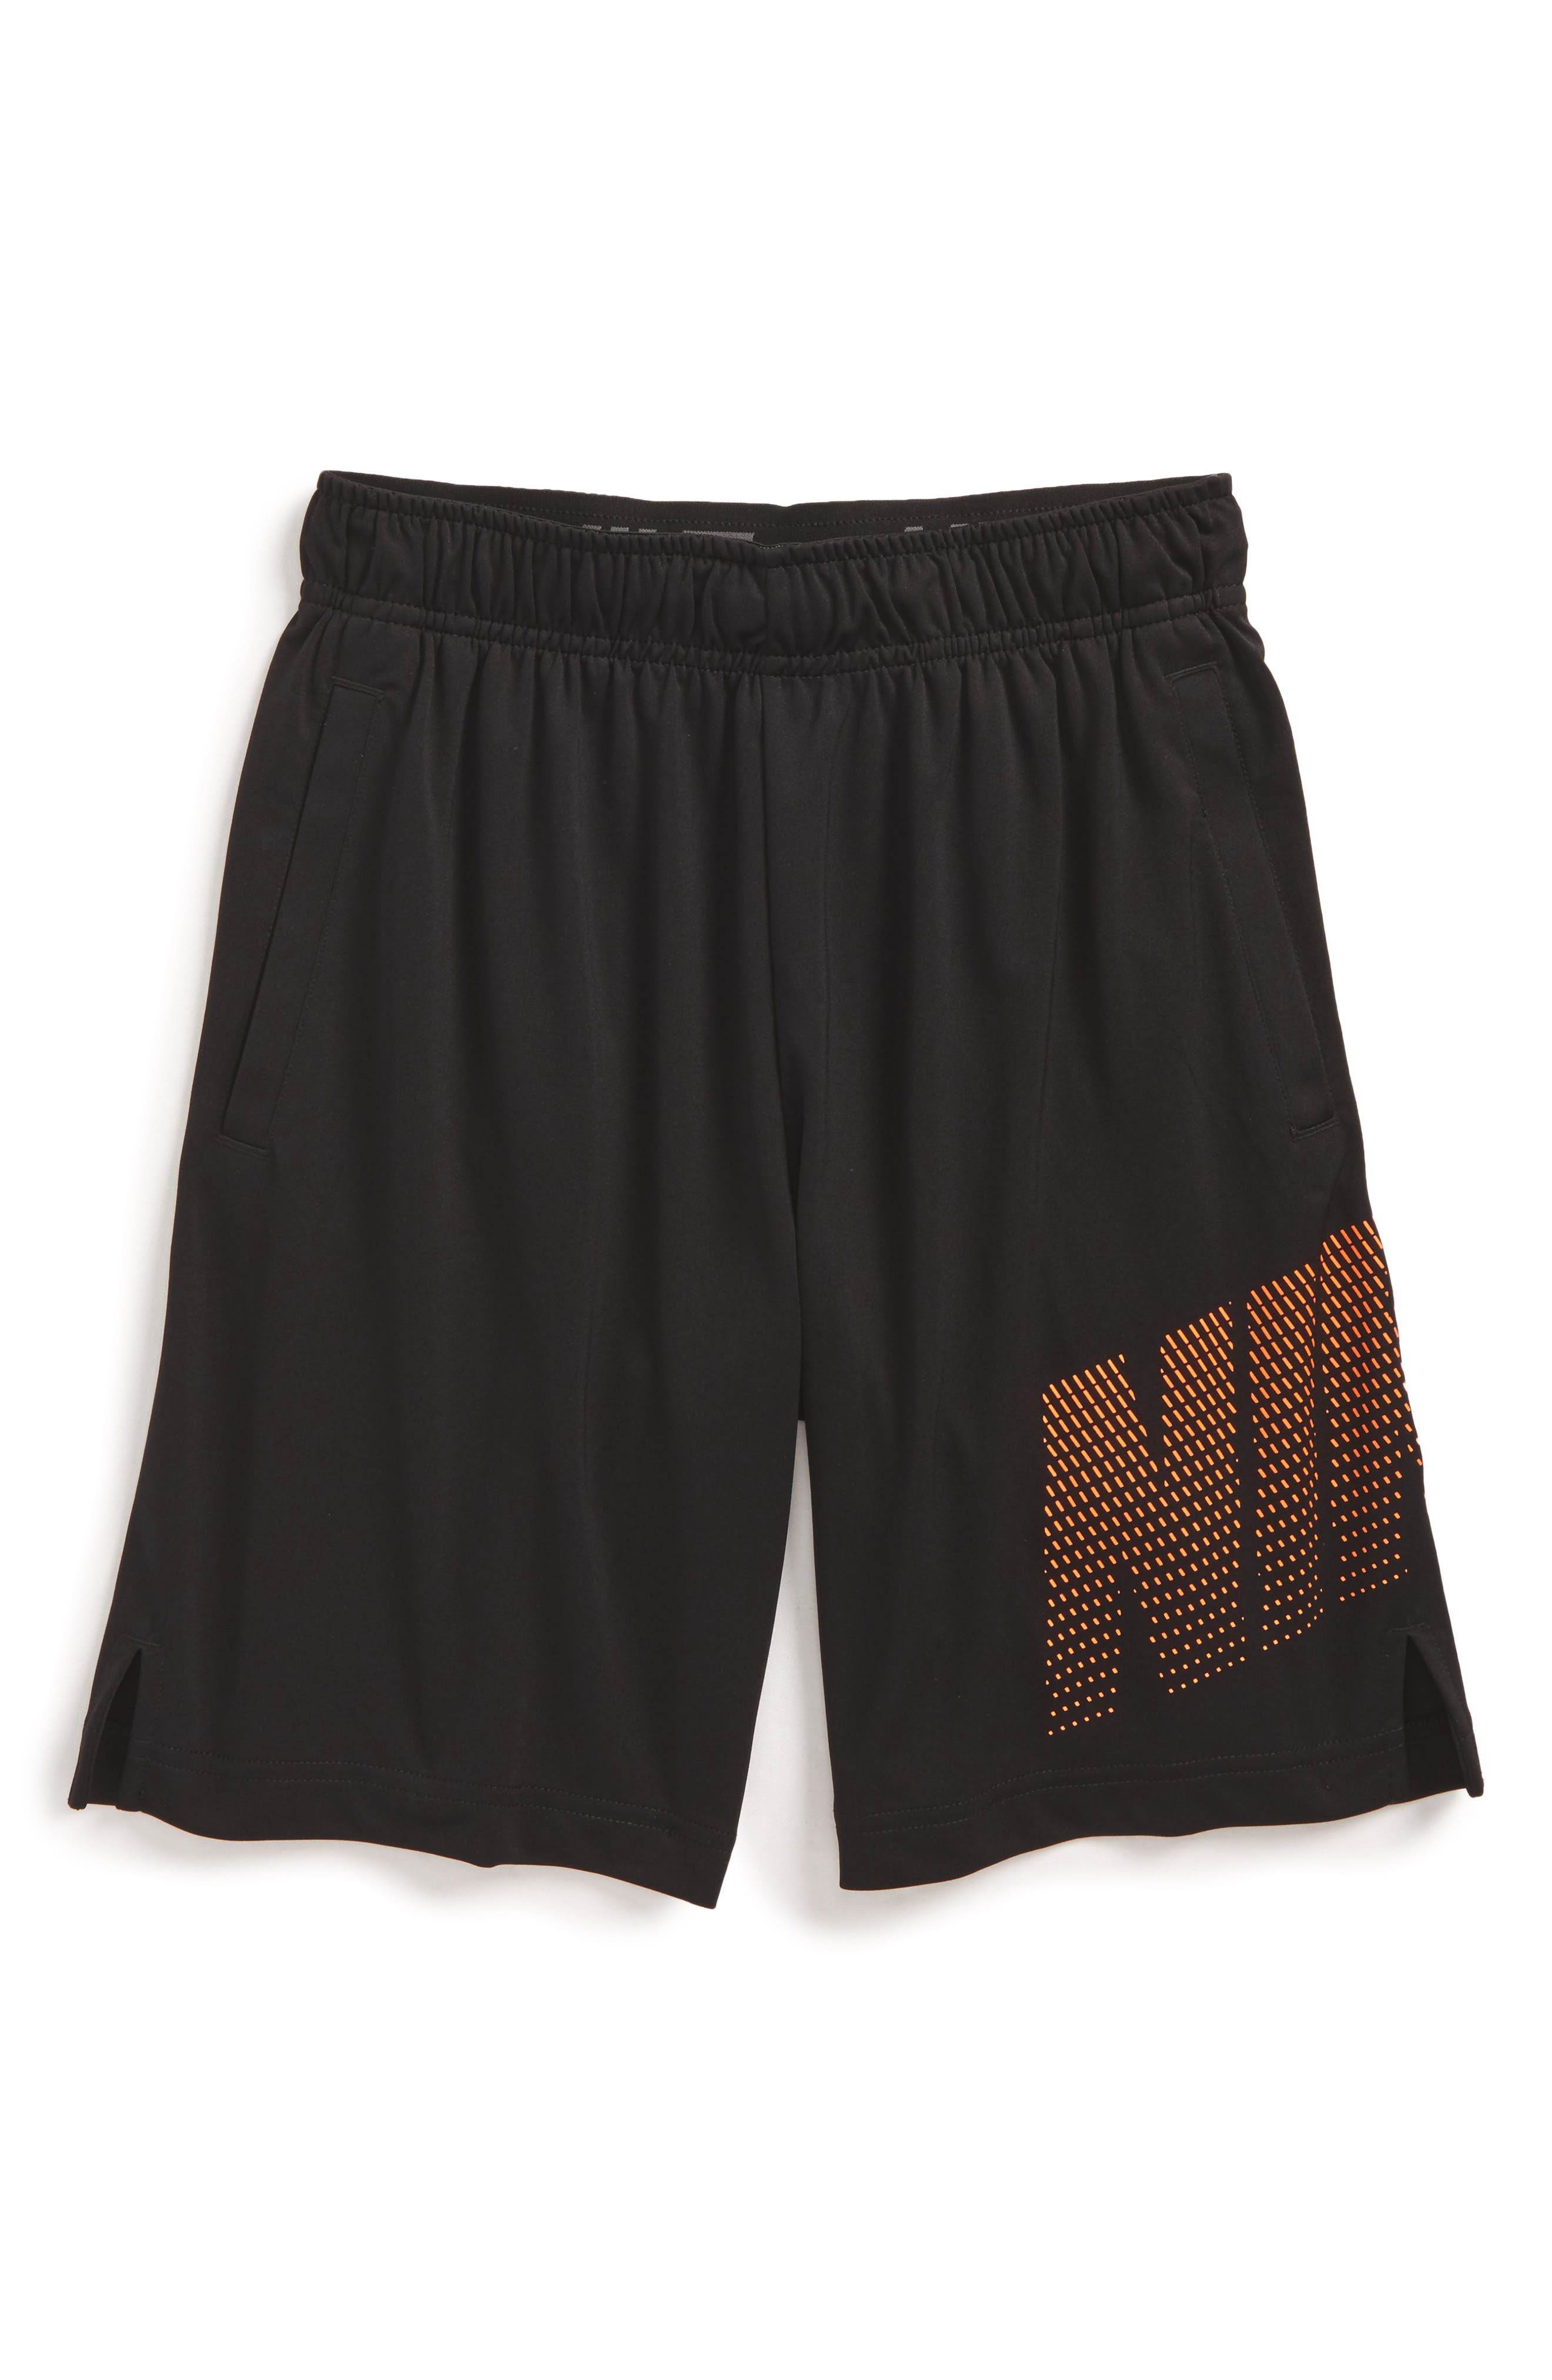 Dry Logo Graphic Training Shorts,                         Main,                         color, Black